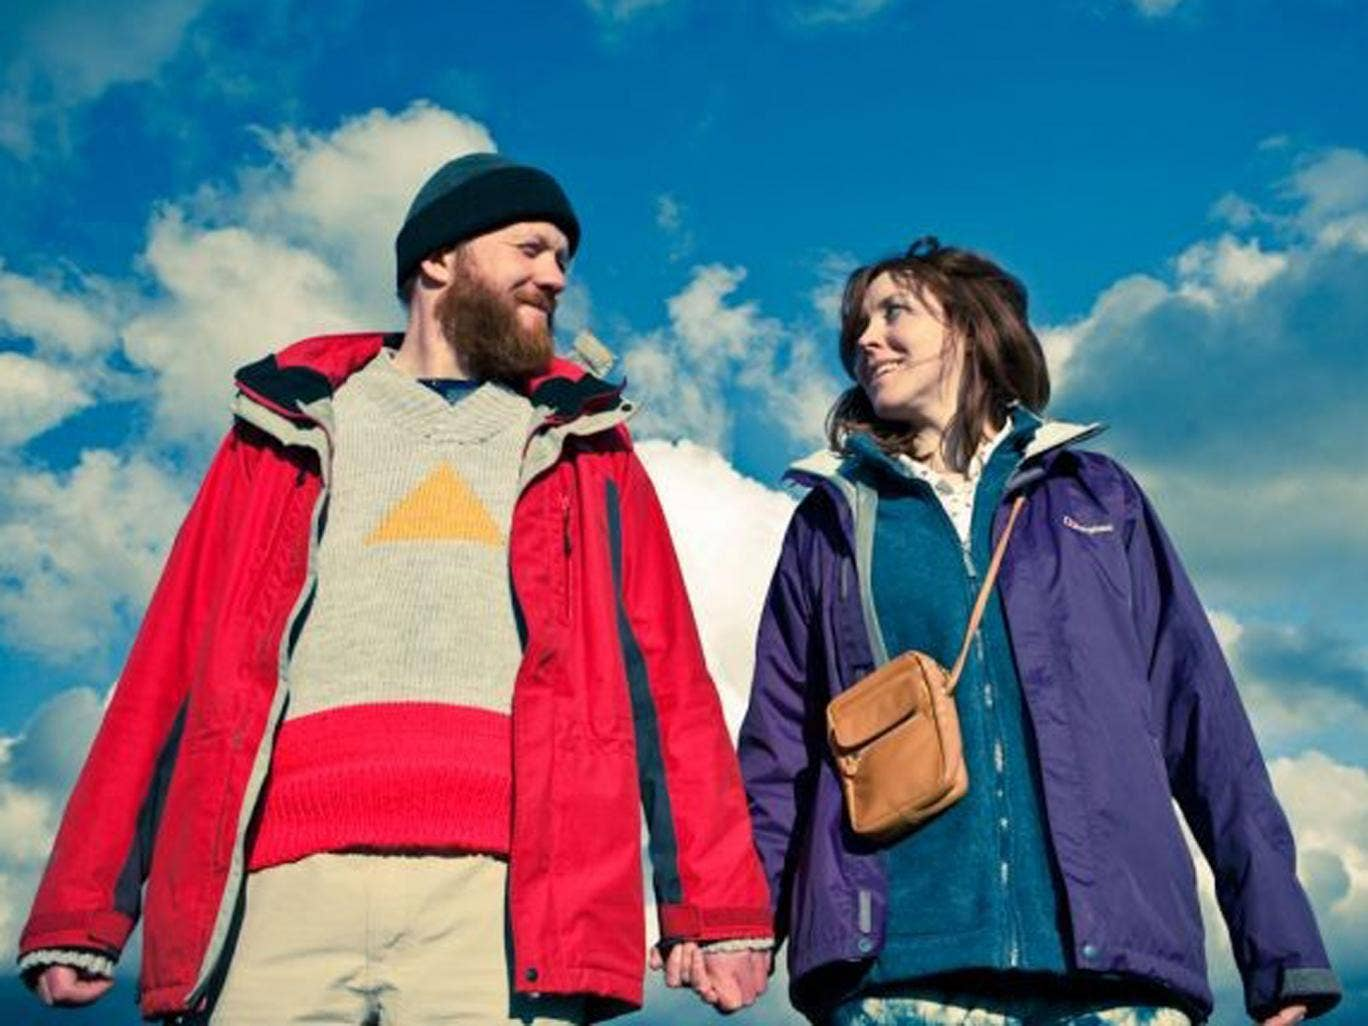 DVD & Blu-ray review: Sightseers (15)